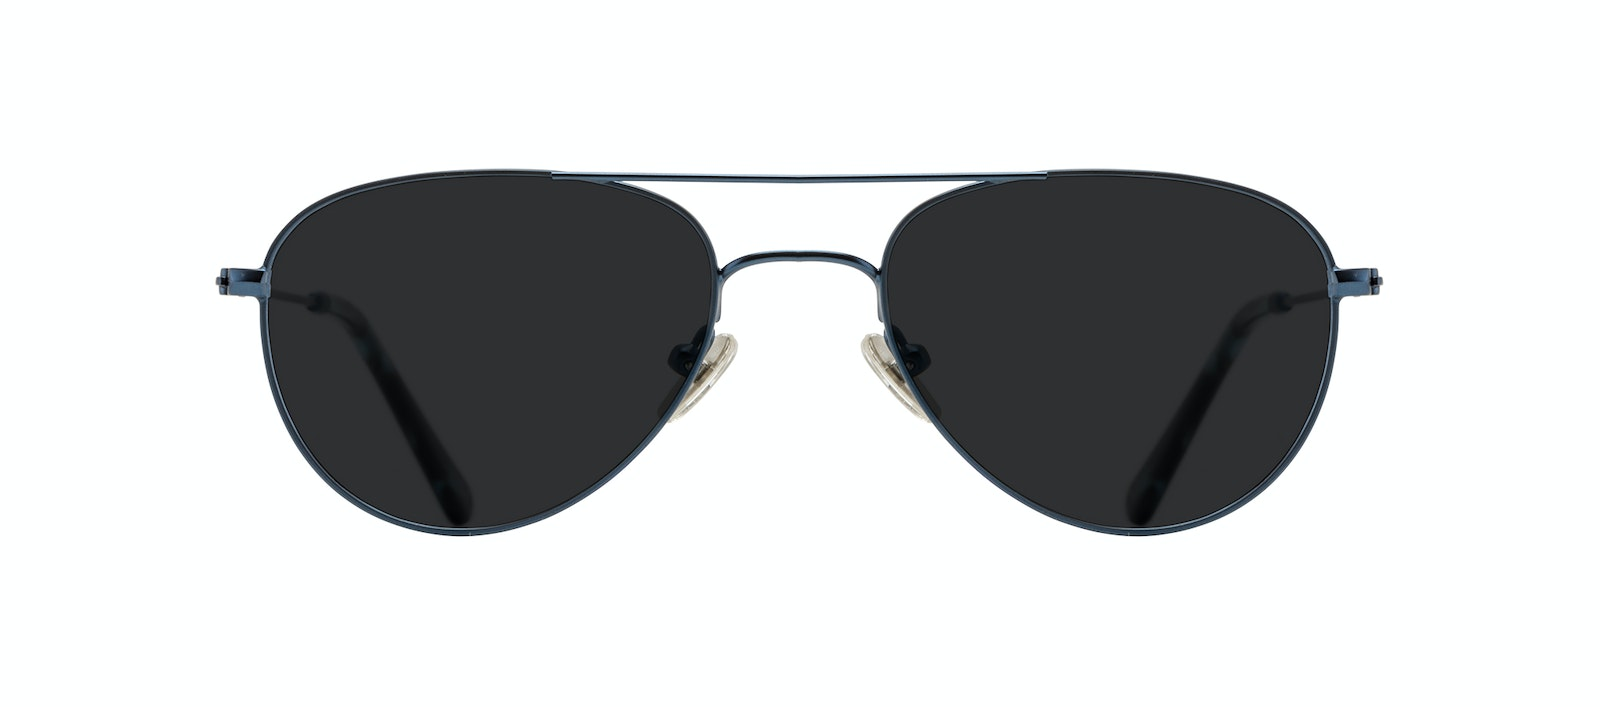 Affordable Fashion Glasses Aviator Sunglasses Women Figure Marine Front